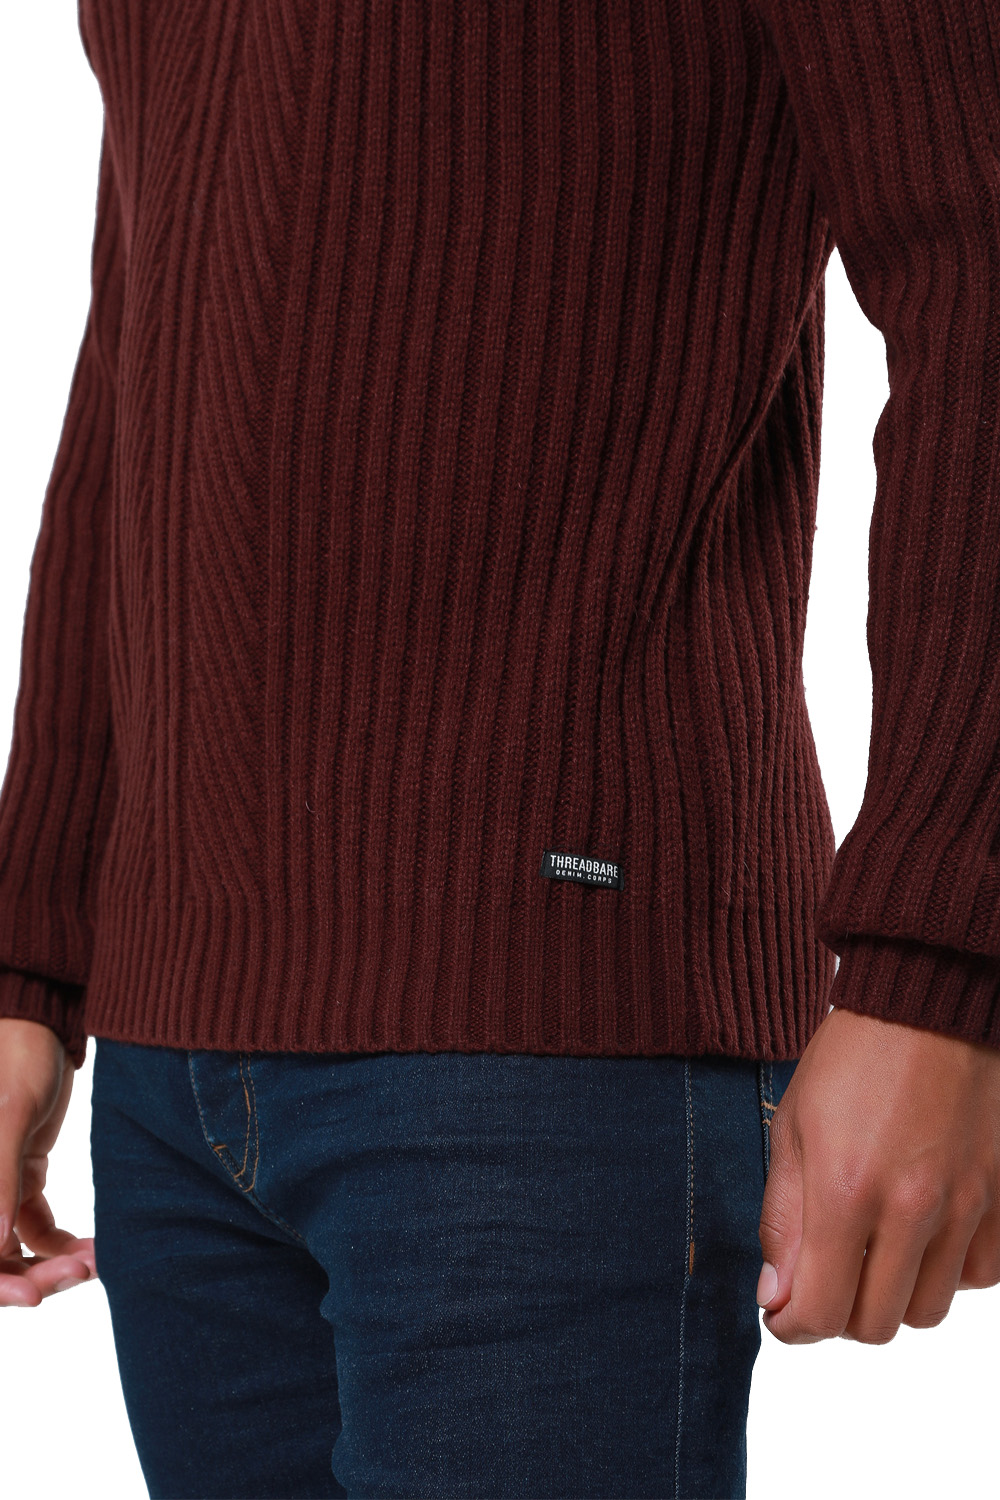 Threadbare-Mens-Saltbush-Jumper-Crew-Neck-Chunky-Cable-Knit-Wool-Blend-Sweater thumbnail 7